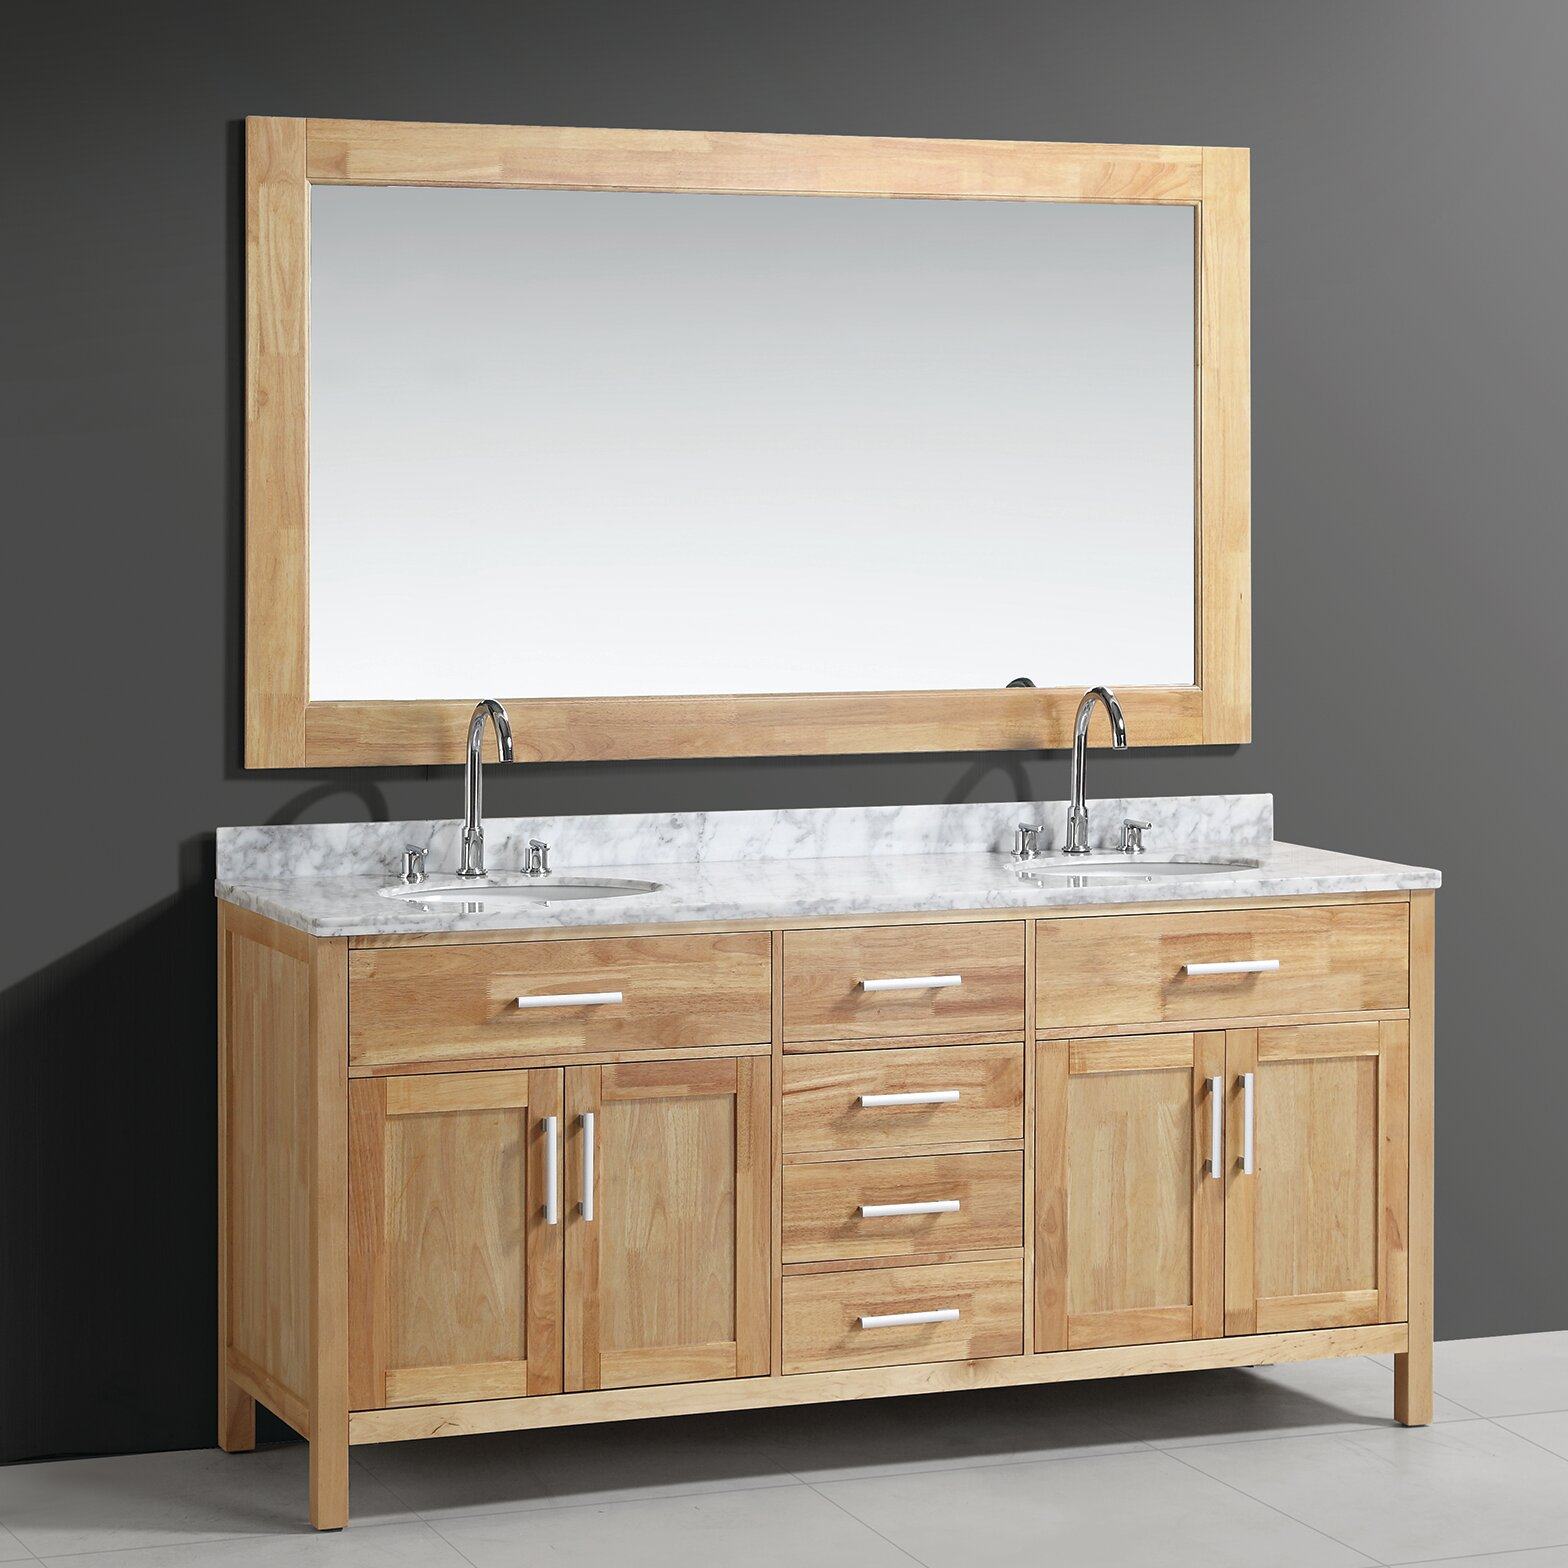 Double bathroom vanity - Red Barrel Studio Reg Halcomb 72 Quot Double Bathroom Vanity